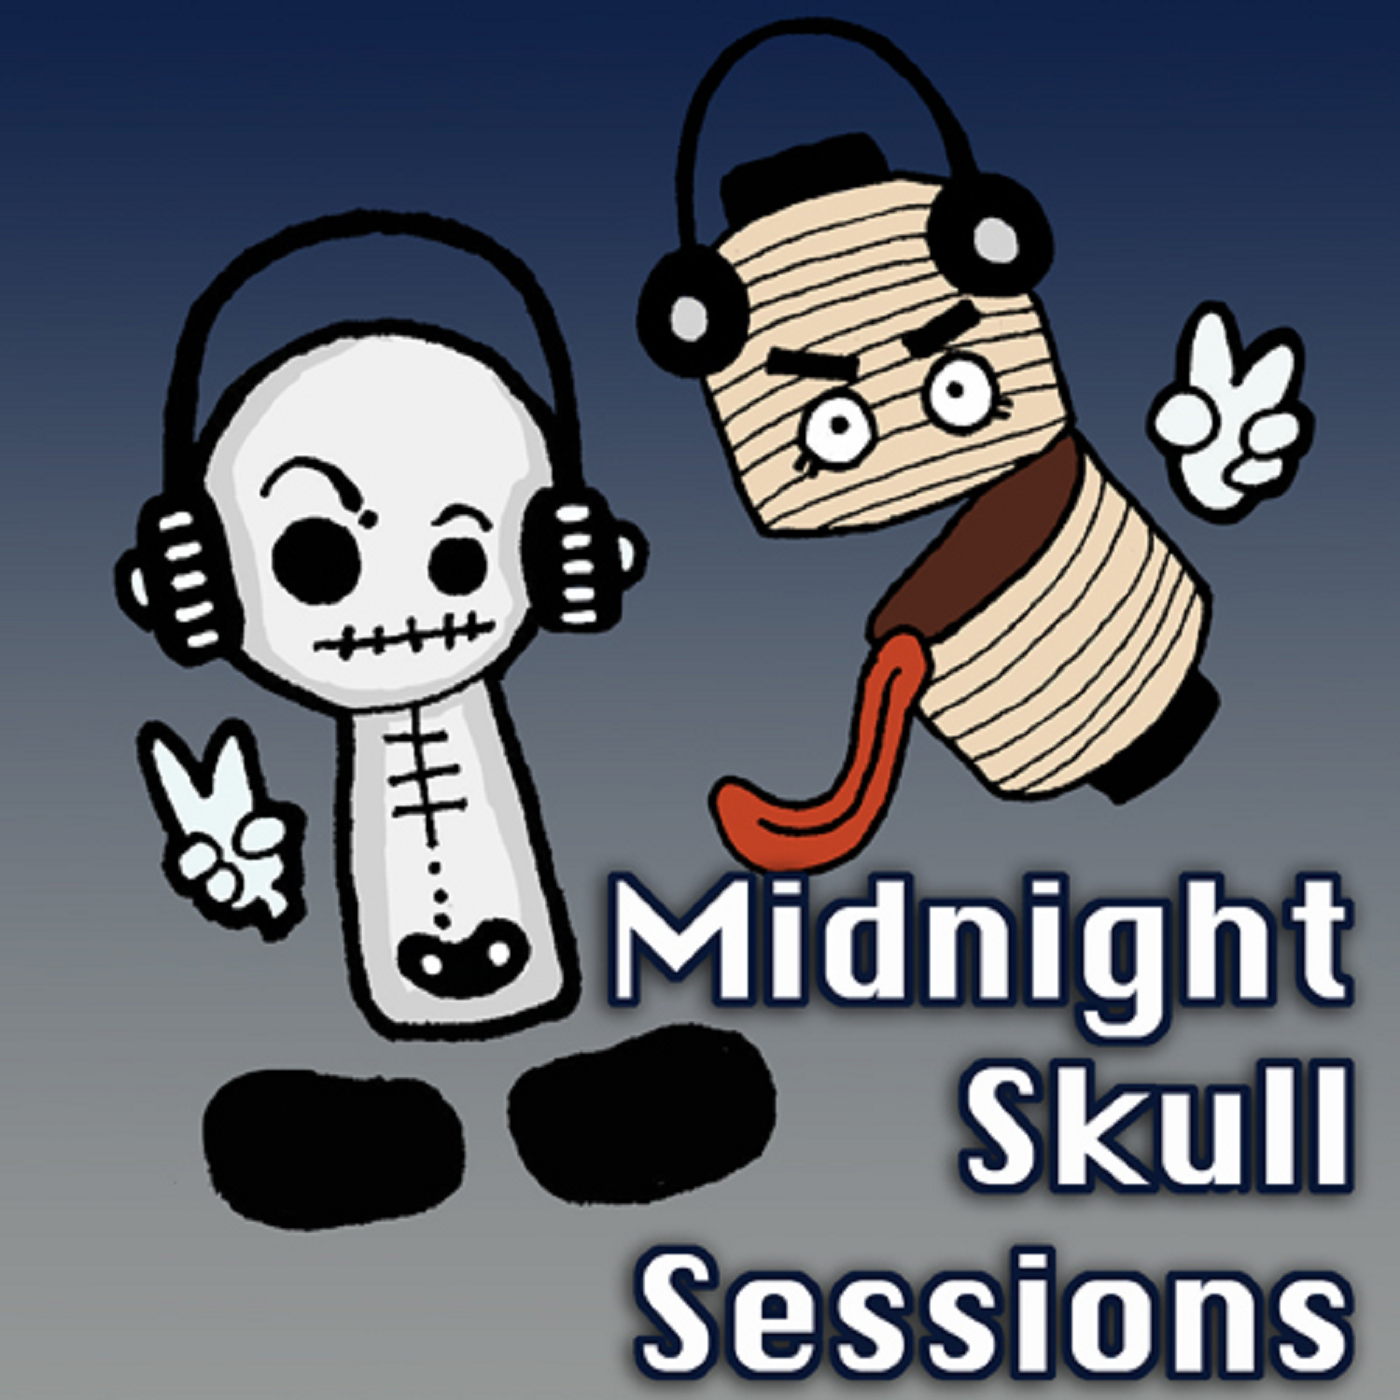 Midnight Skull Sessions - Episode 114 show art